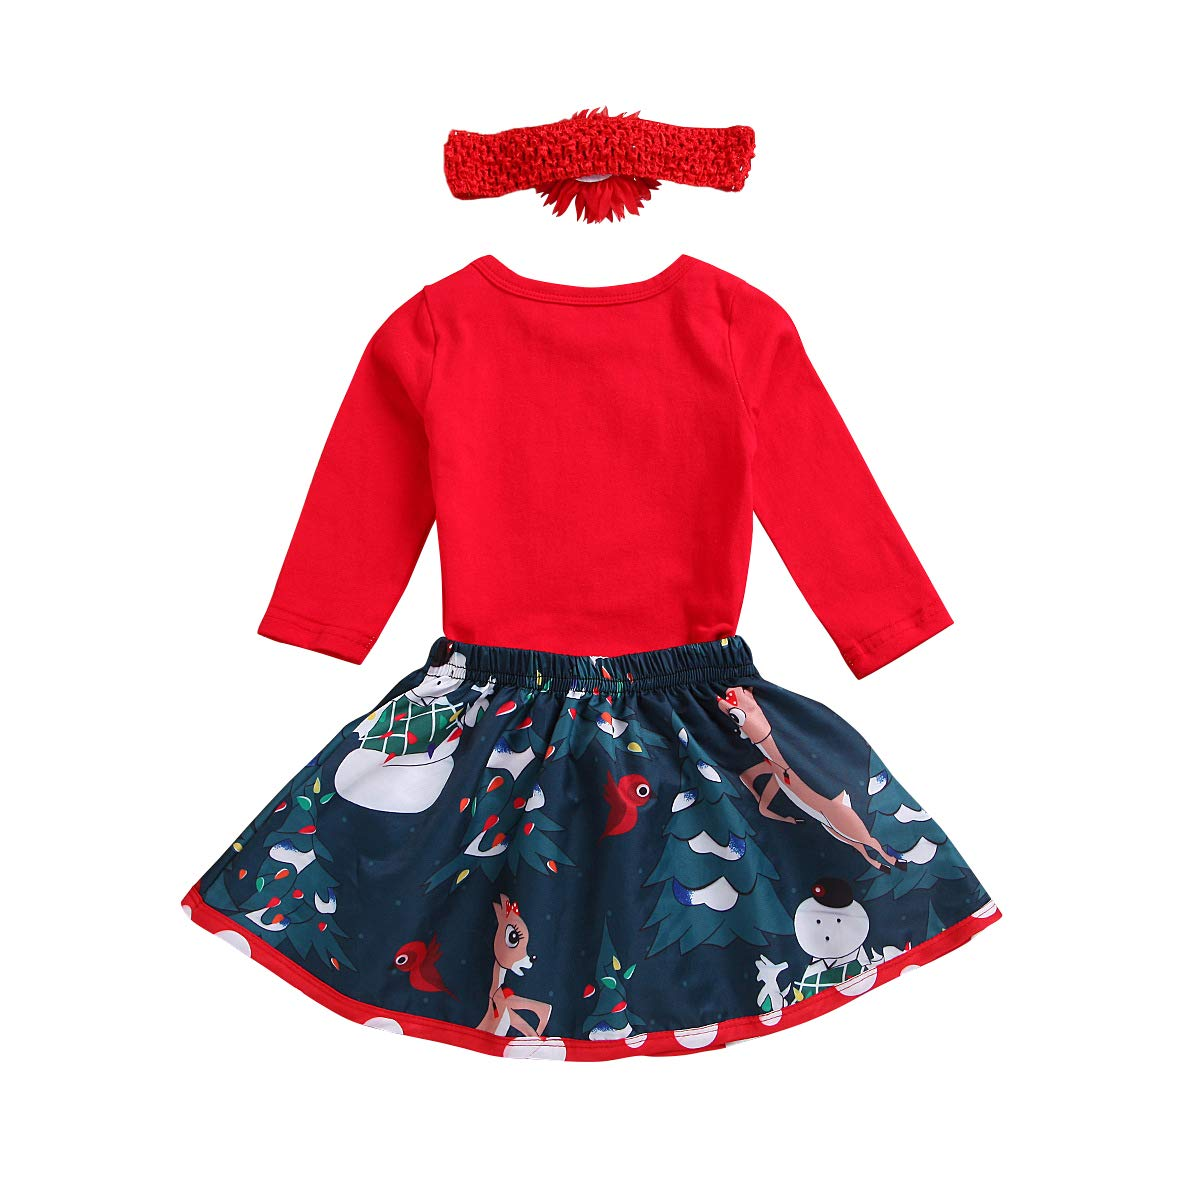 ac63e3b30e69 My First Christmas Holiday Newborn Baby Girl Outfit Romper Tutu Skirt  Headband Costume Merry Xmas Gift Party 3PCS Set 0-3 Months My First  Christmas ...